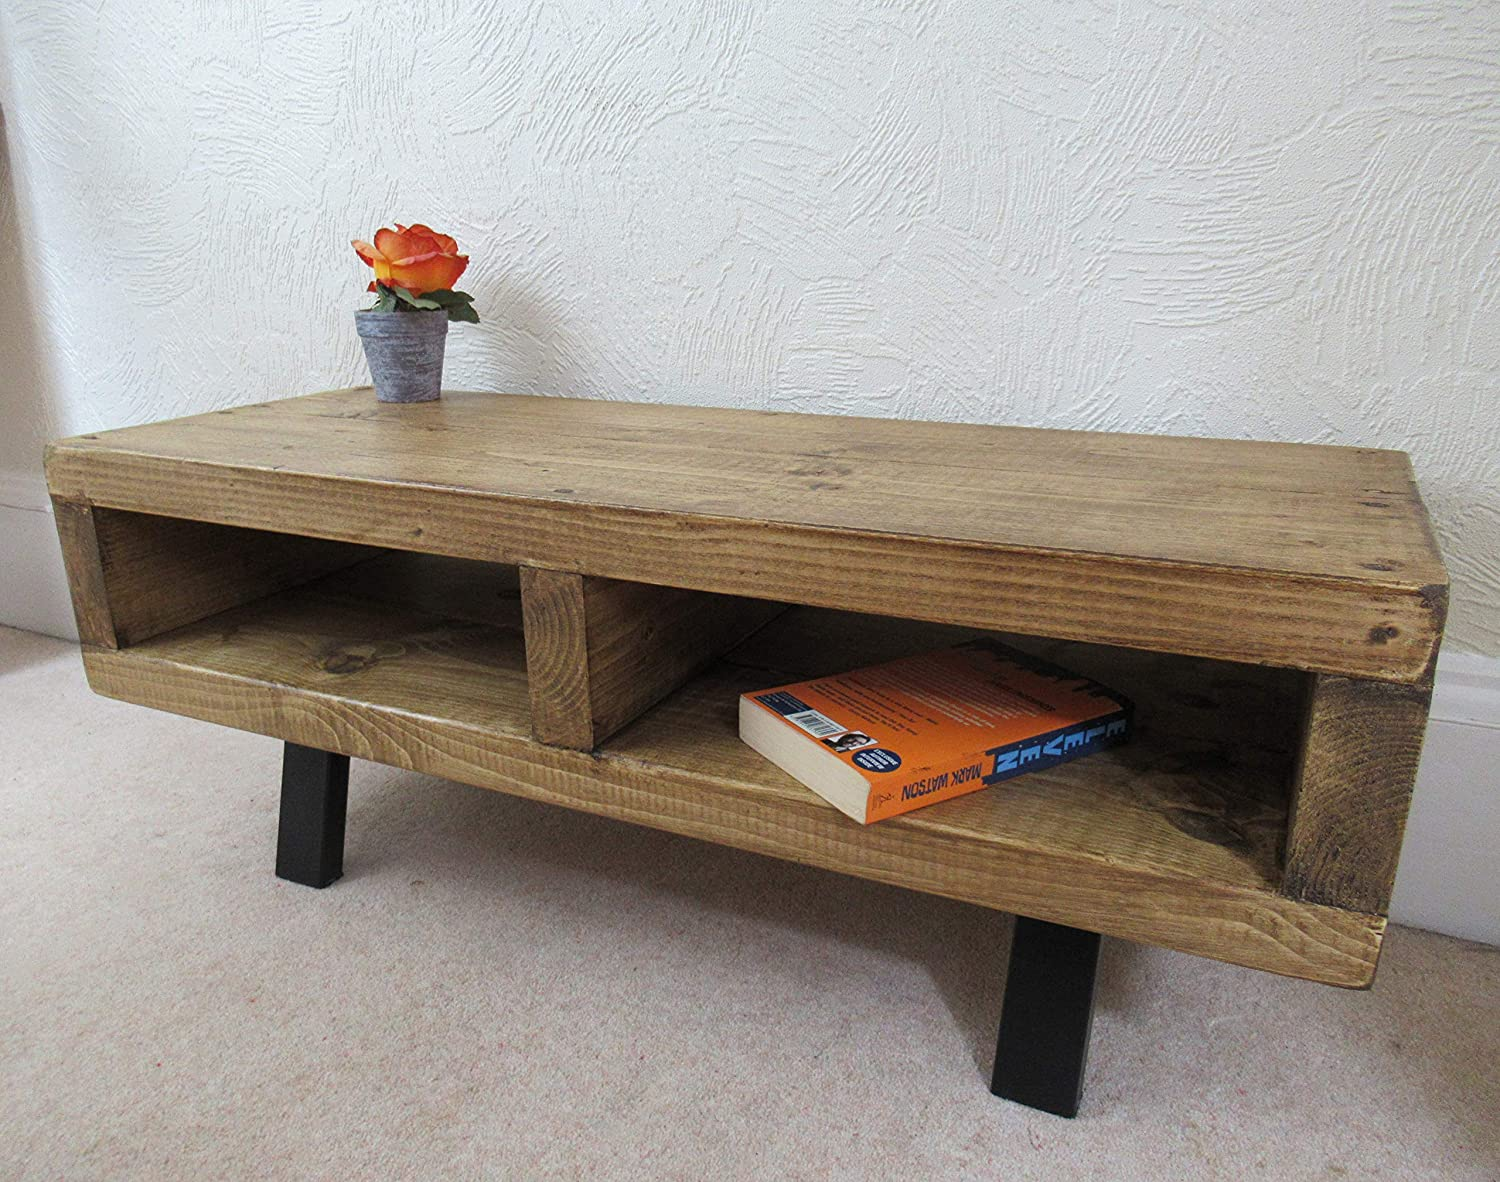 Tv Stand Contemporary For Living Room Rustic Wood Tv Unit Black Legs Amazon Co Uk Handmade